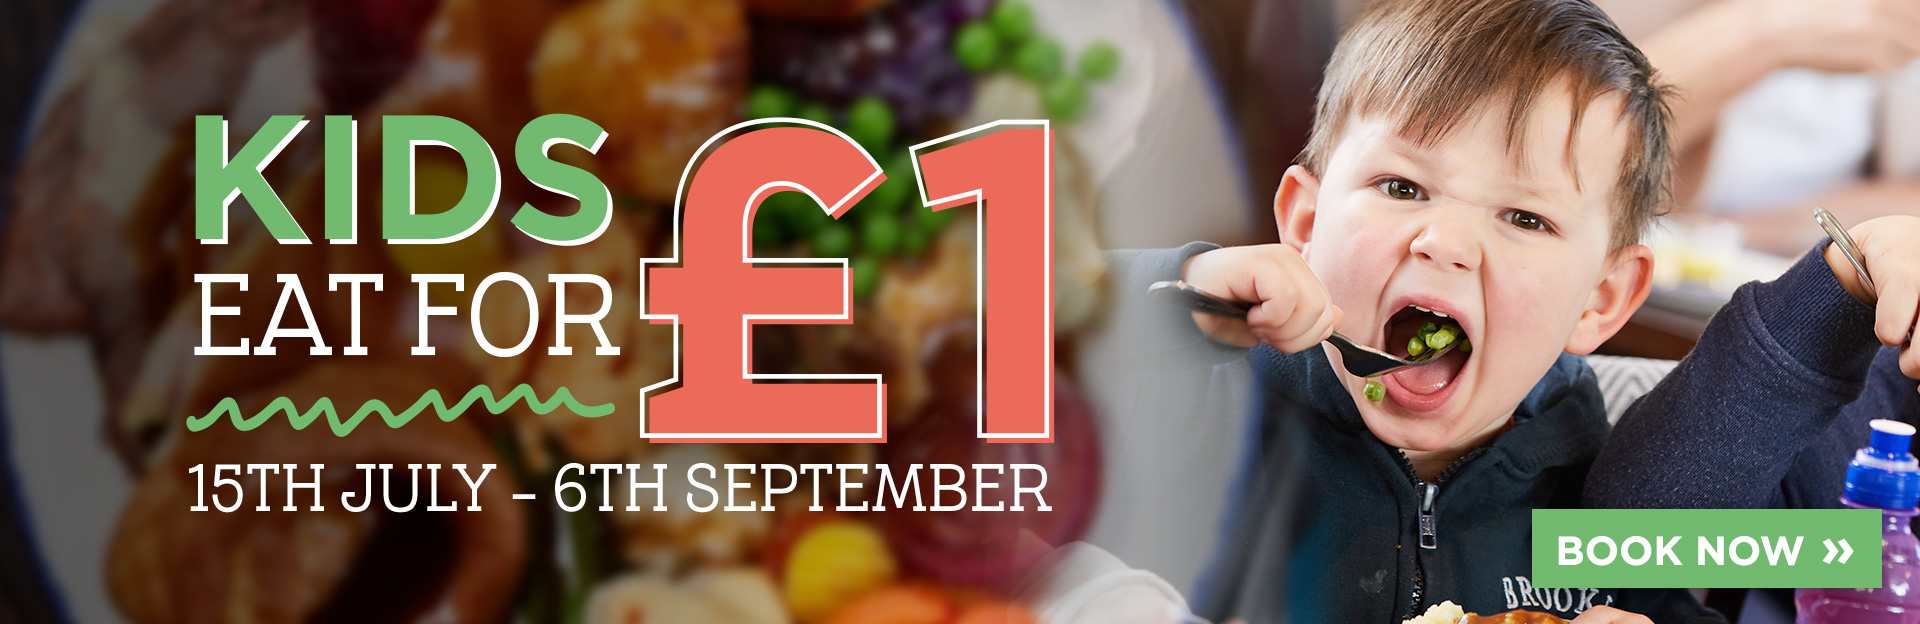 Kids eat for £1 at Red Lion Barnet